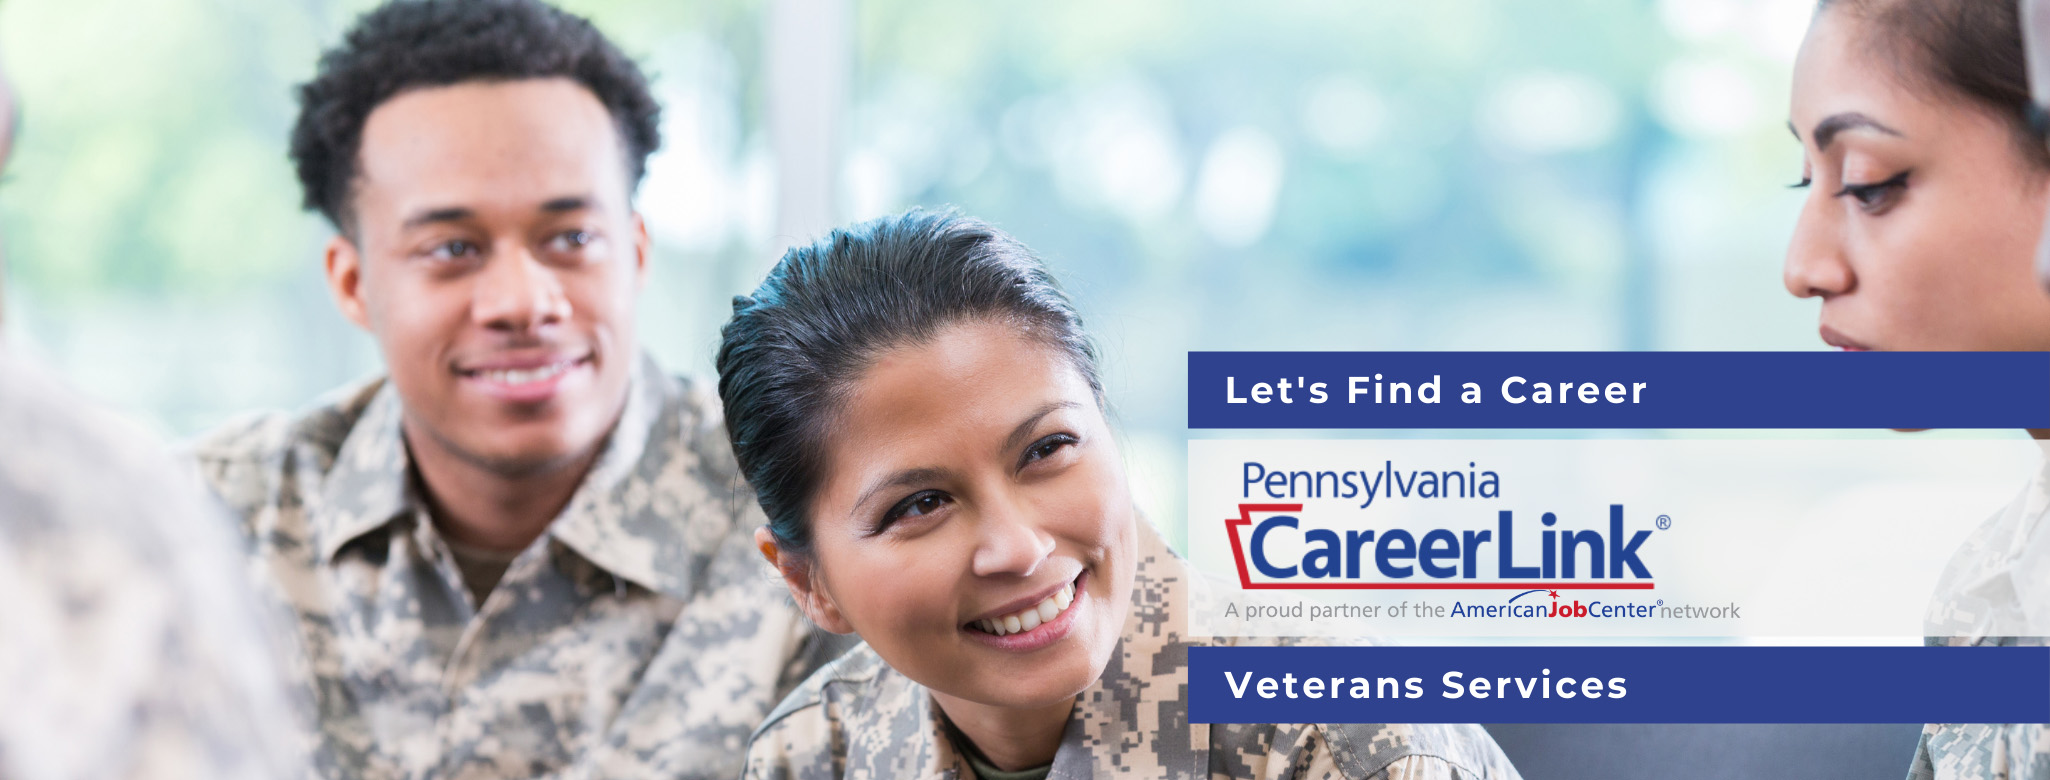 PA Careerlink Veterans Services